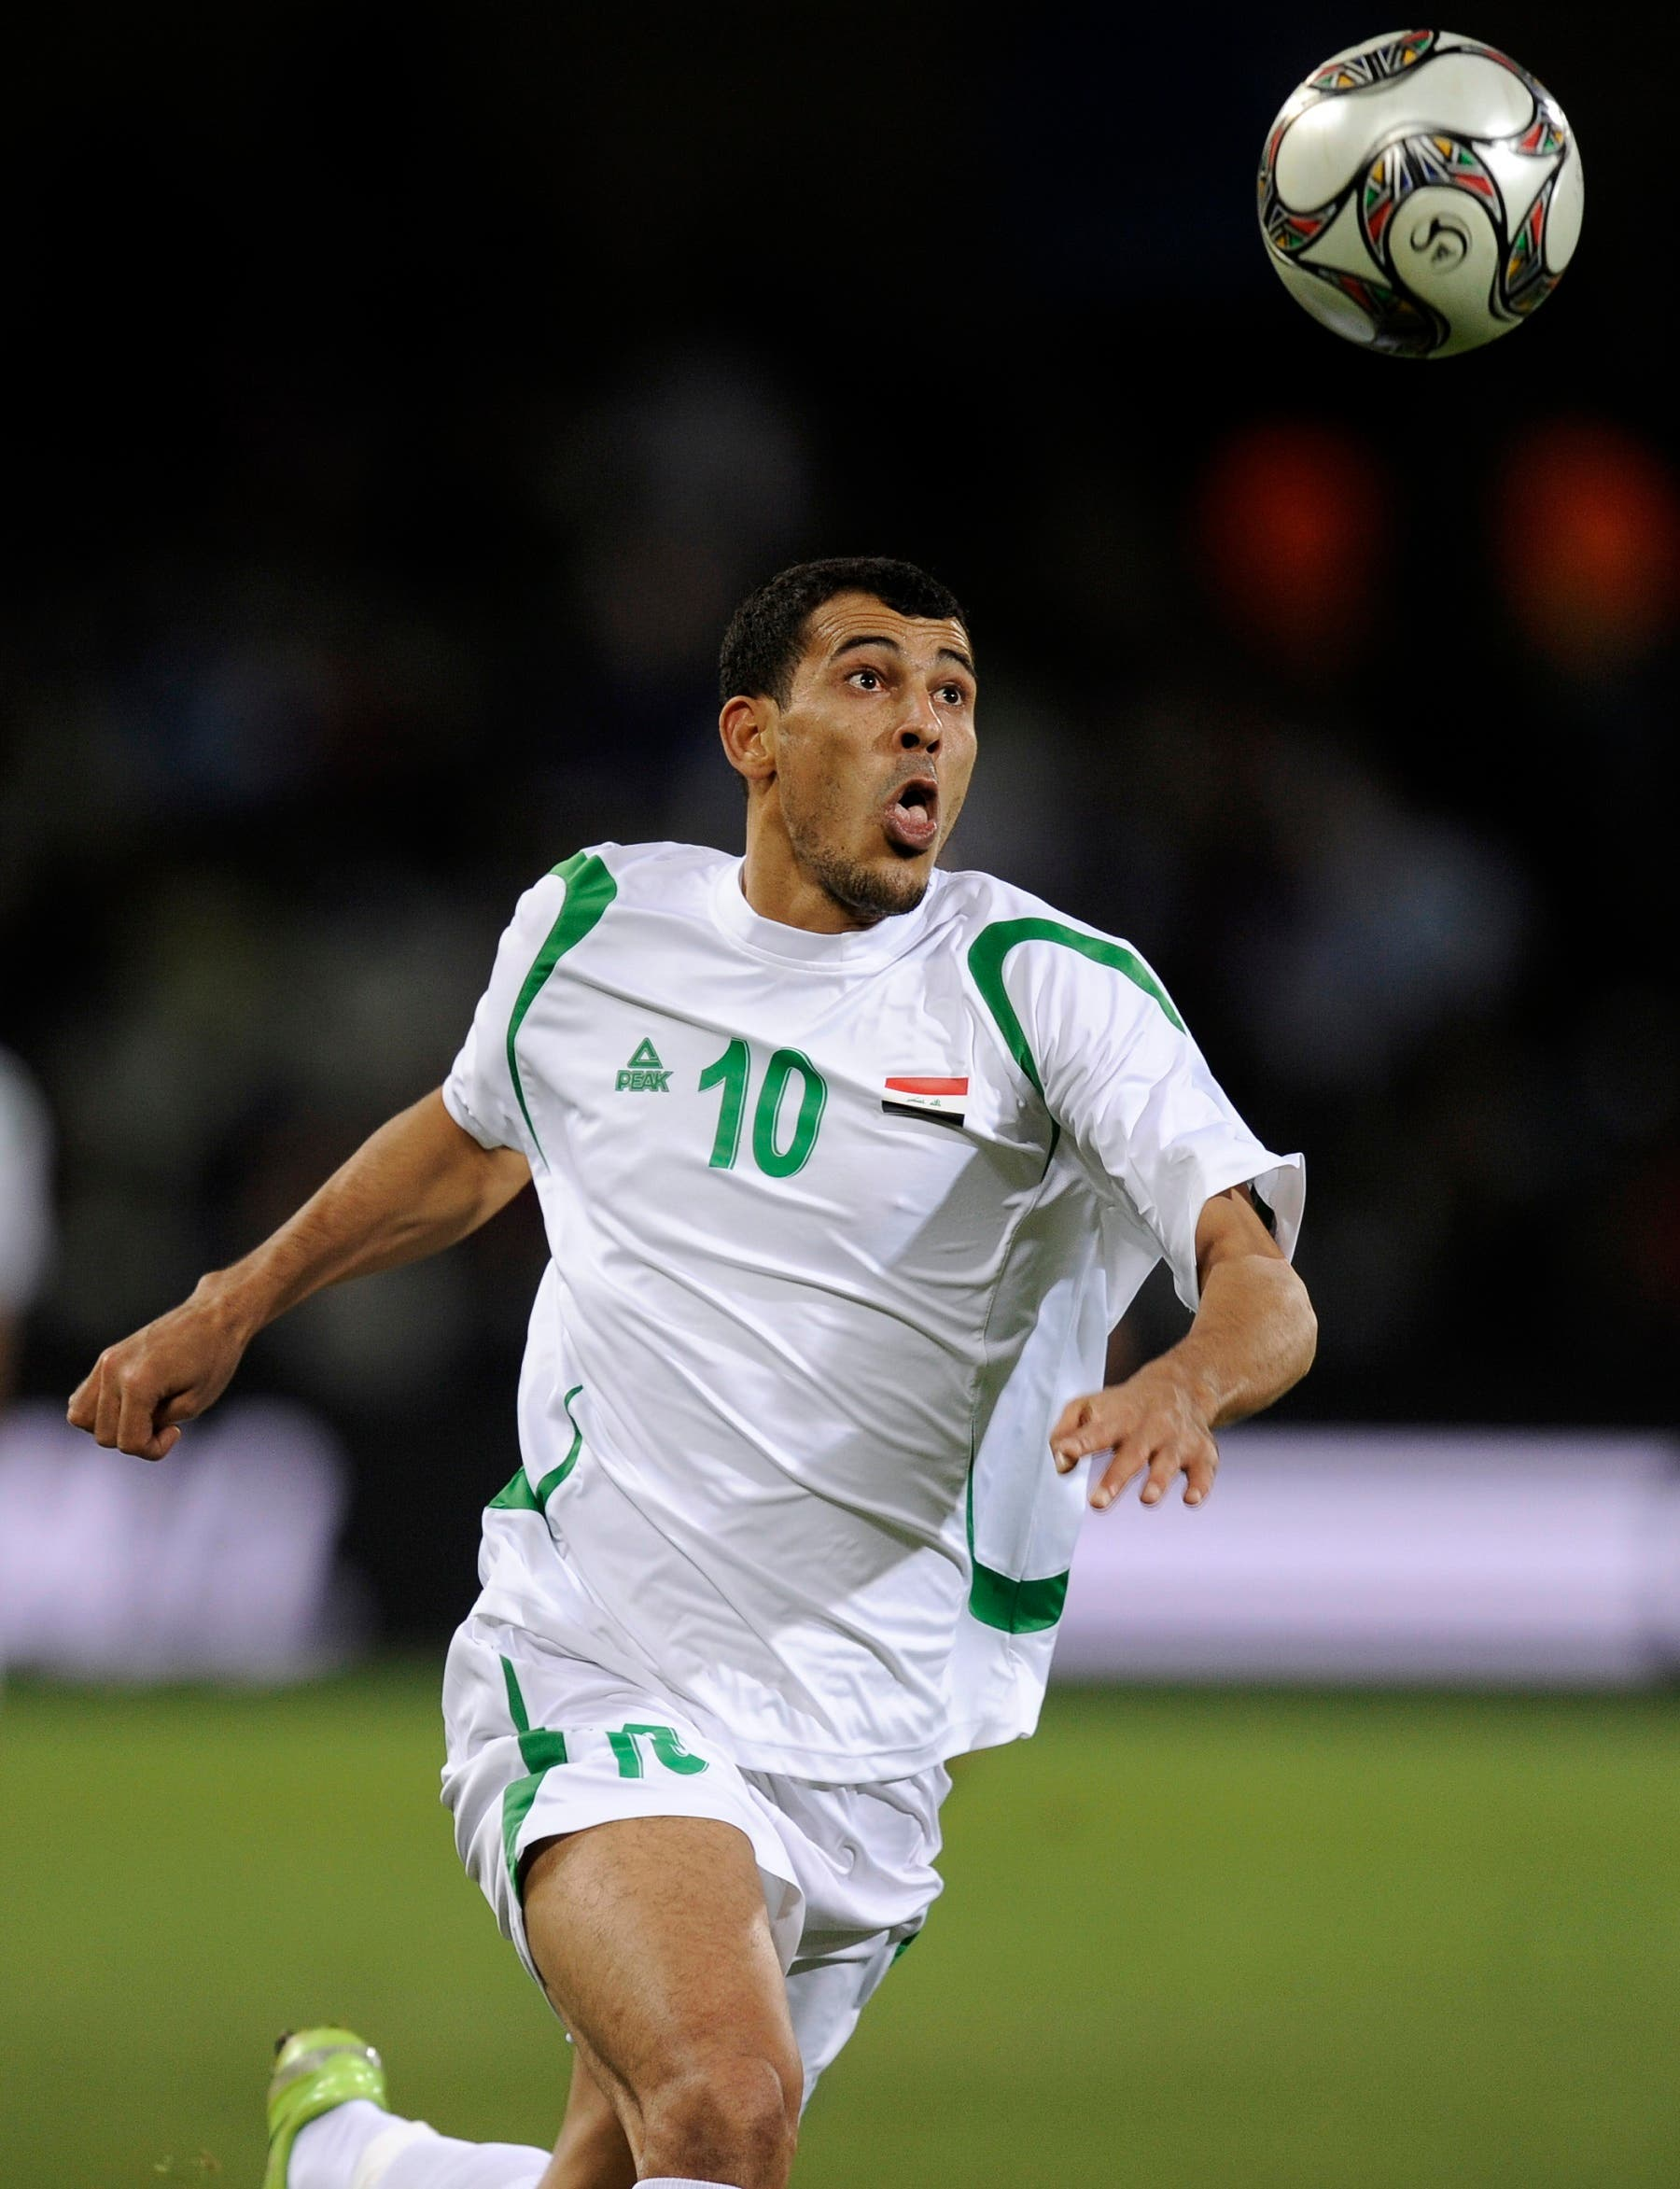 Iraq's Younis Mahmoud at a Confederations Cup match against Spain in South Africa in June 2009. (AP)